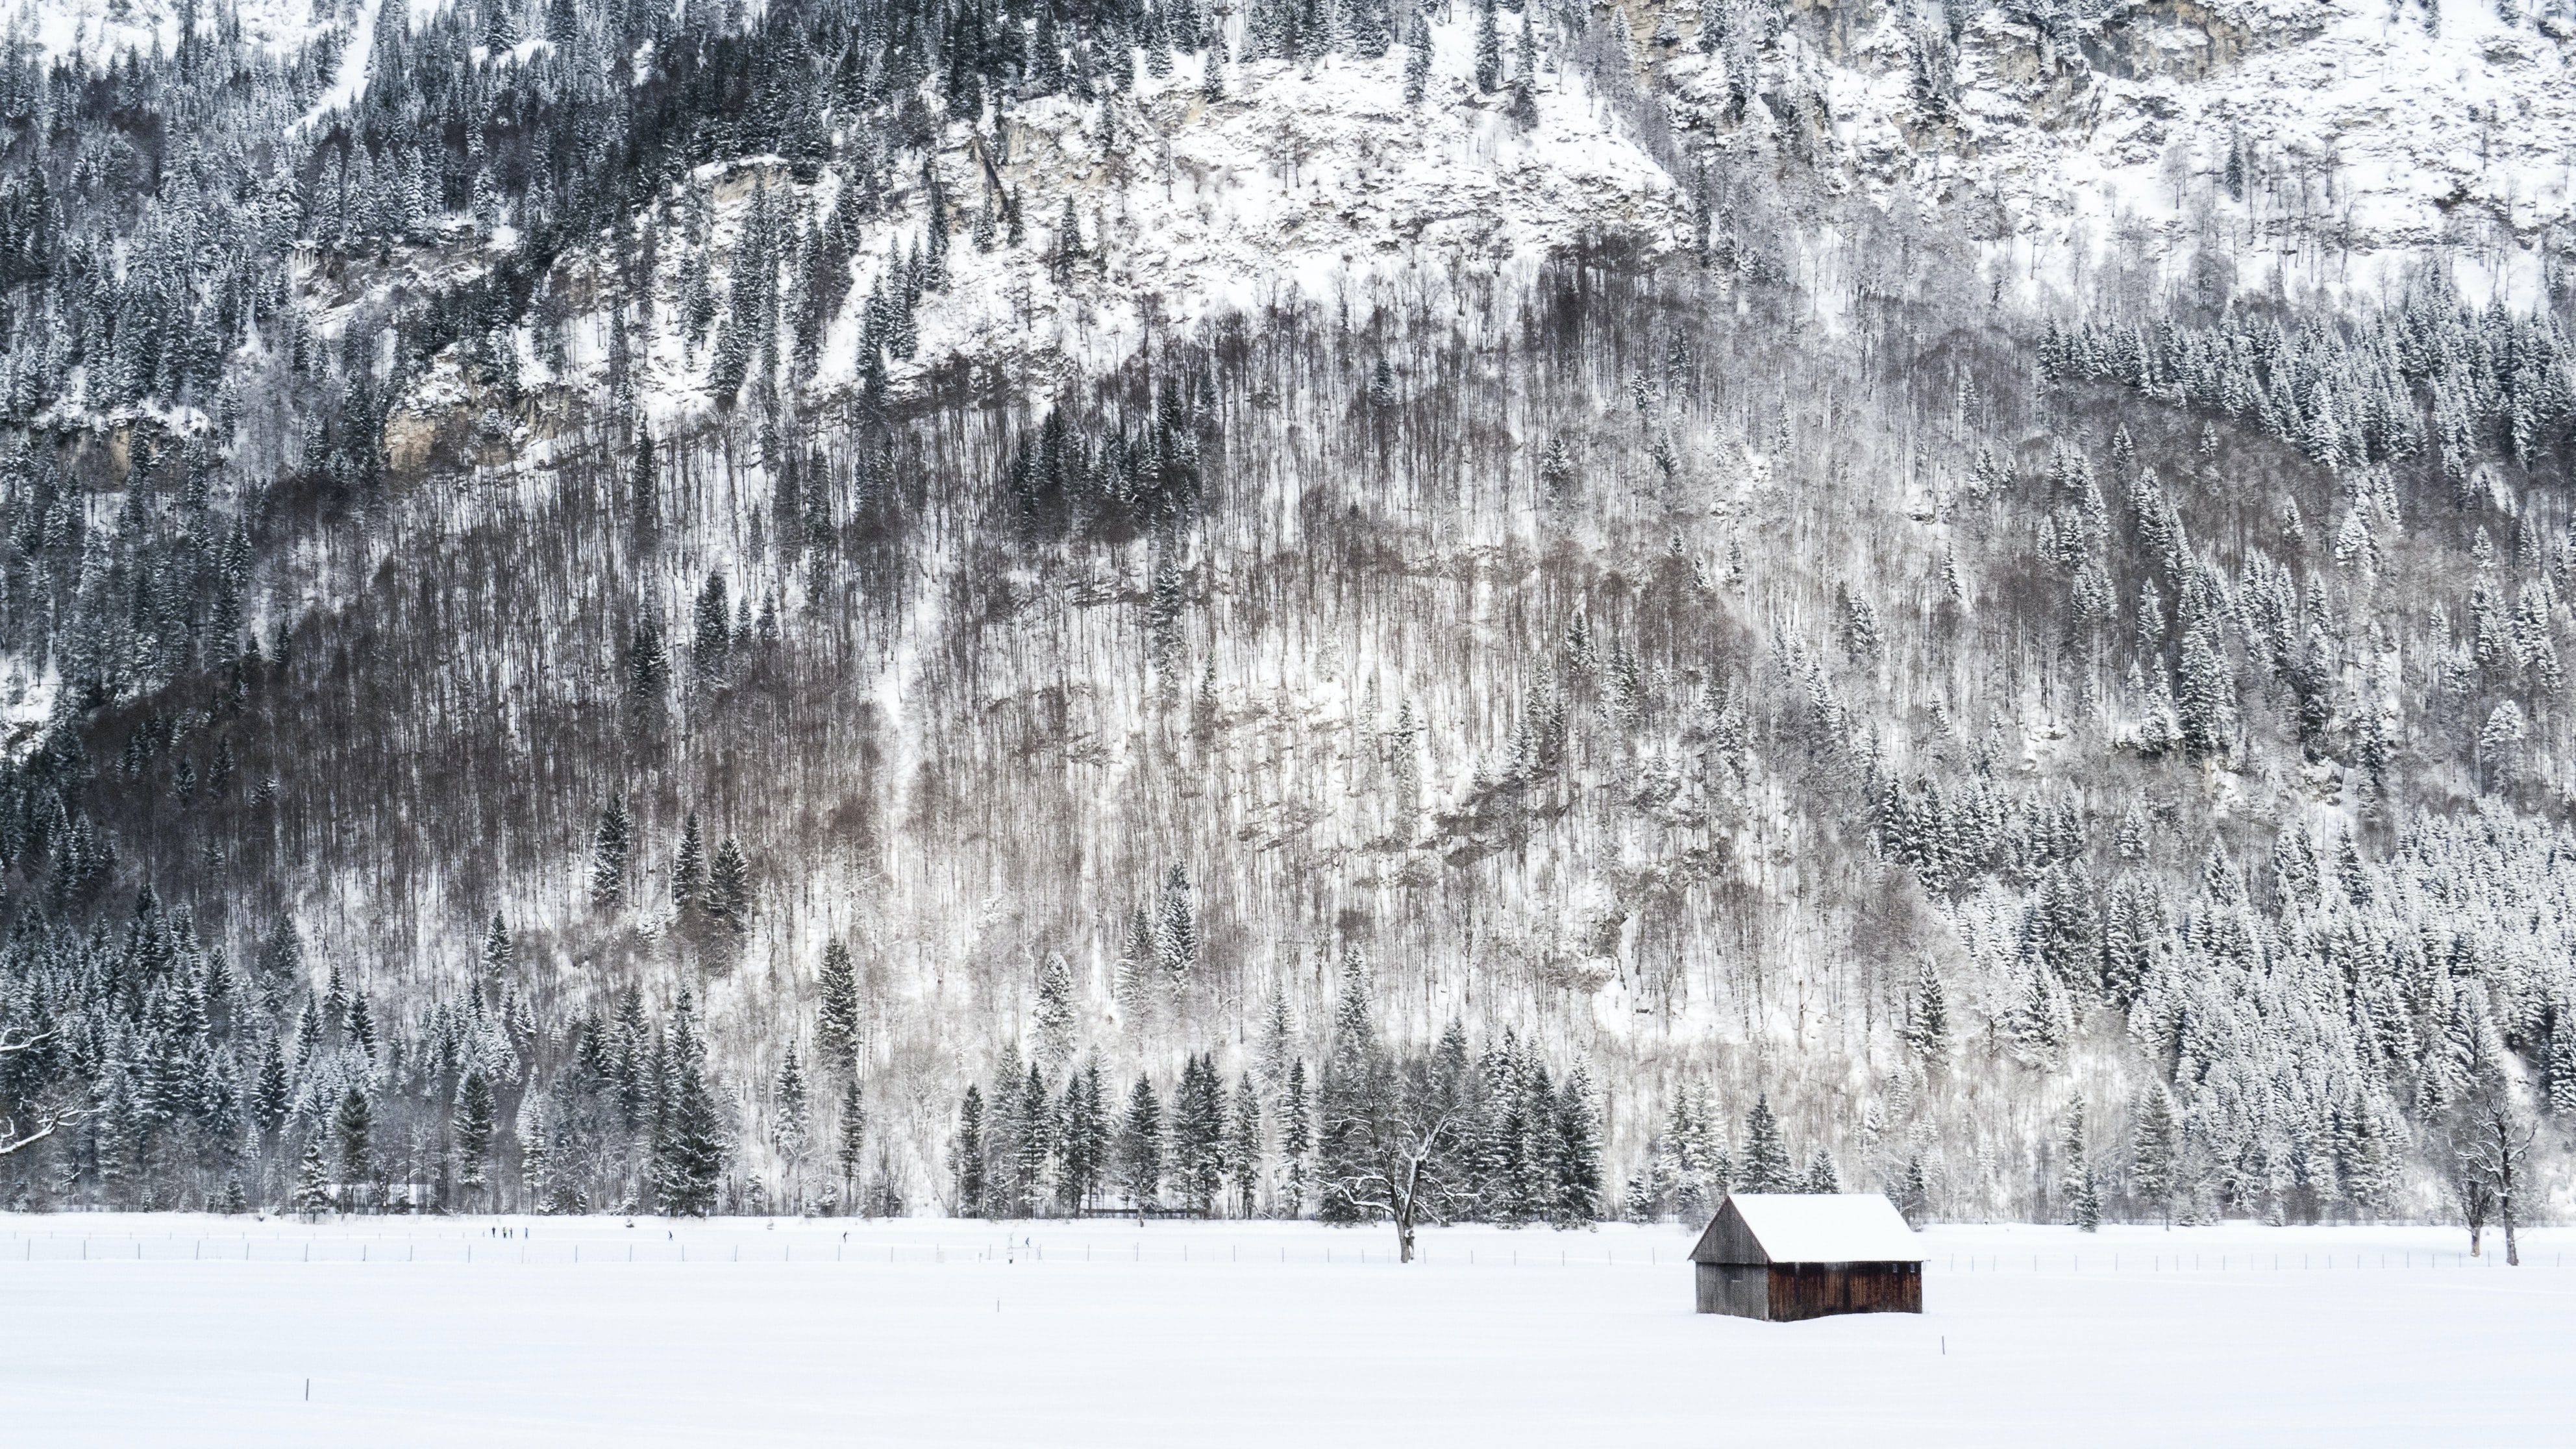 A wooden shack at the foot of a wooded mountain in the winter